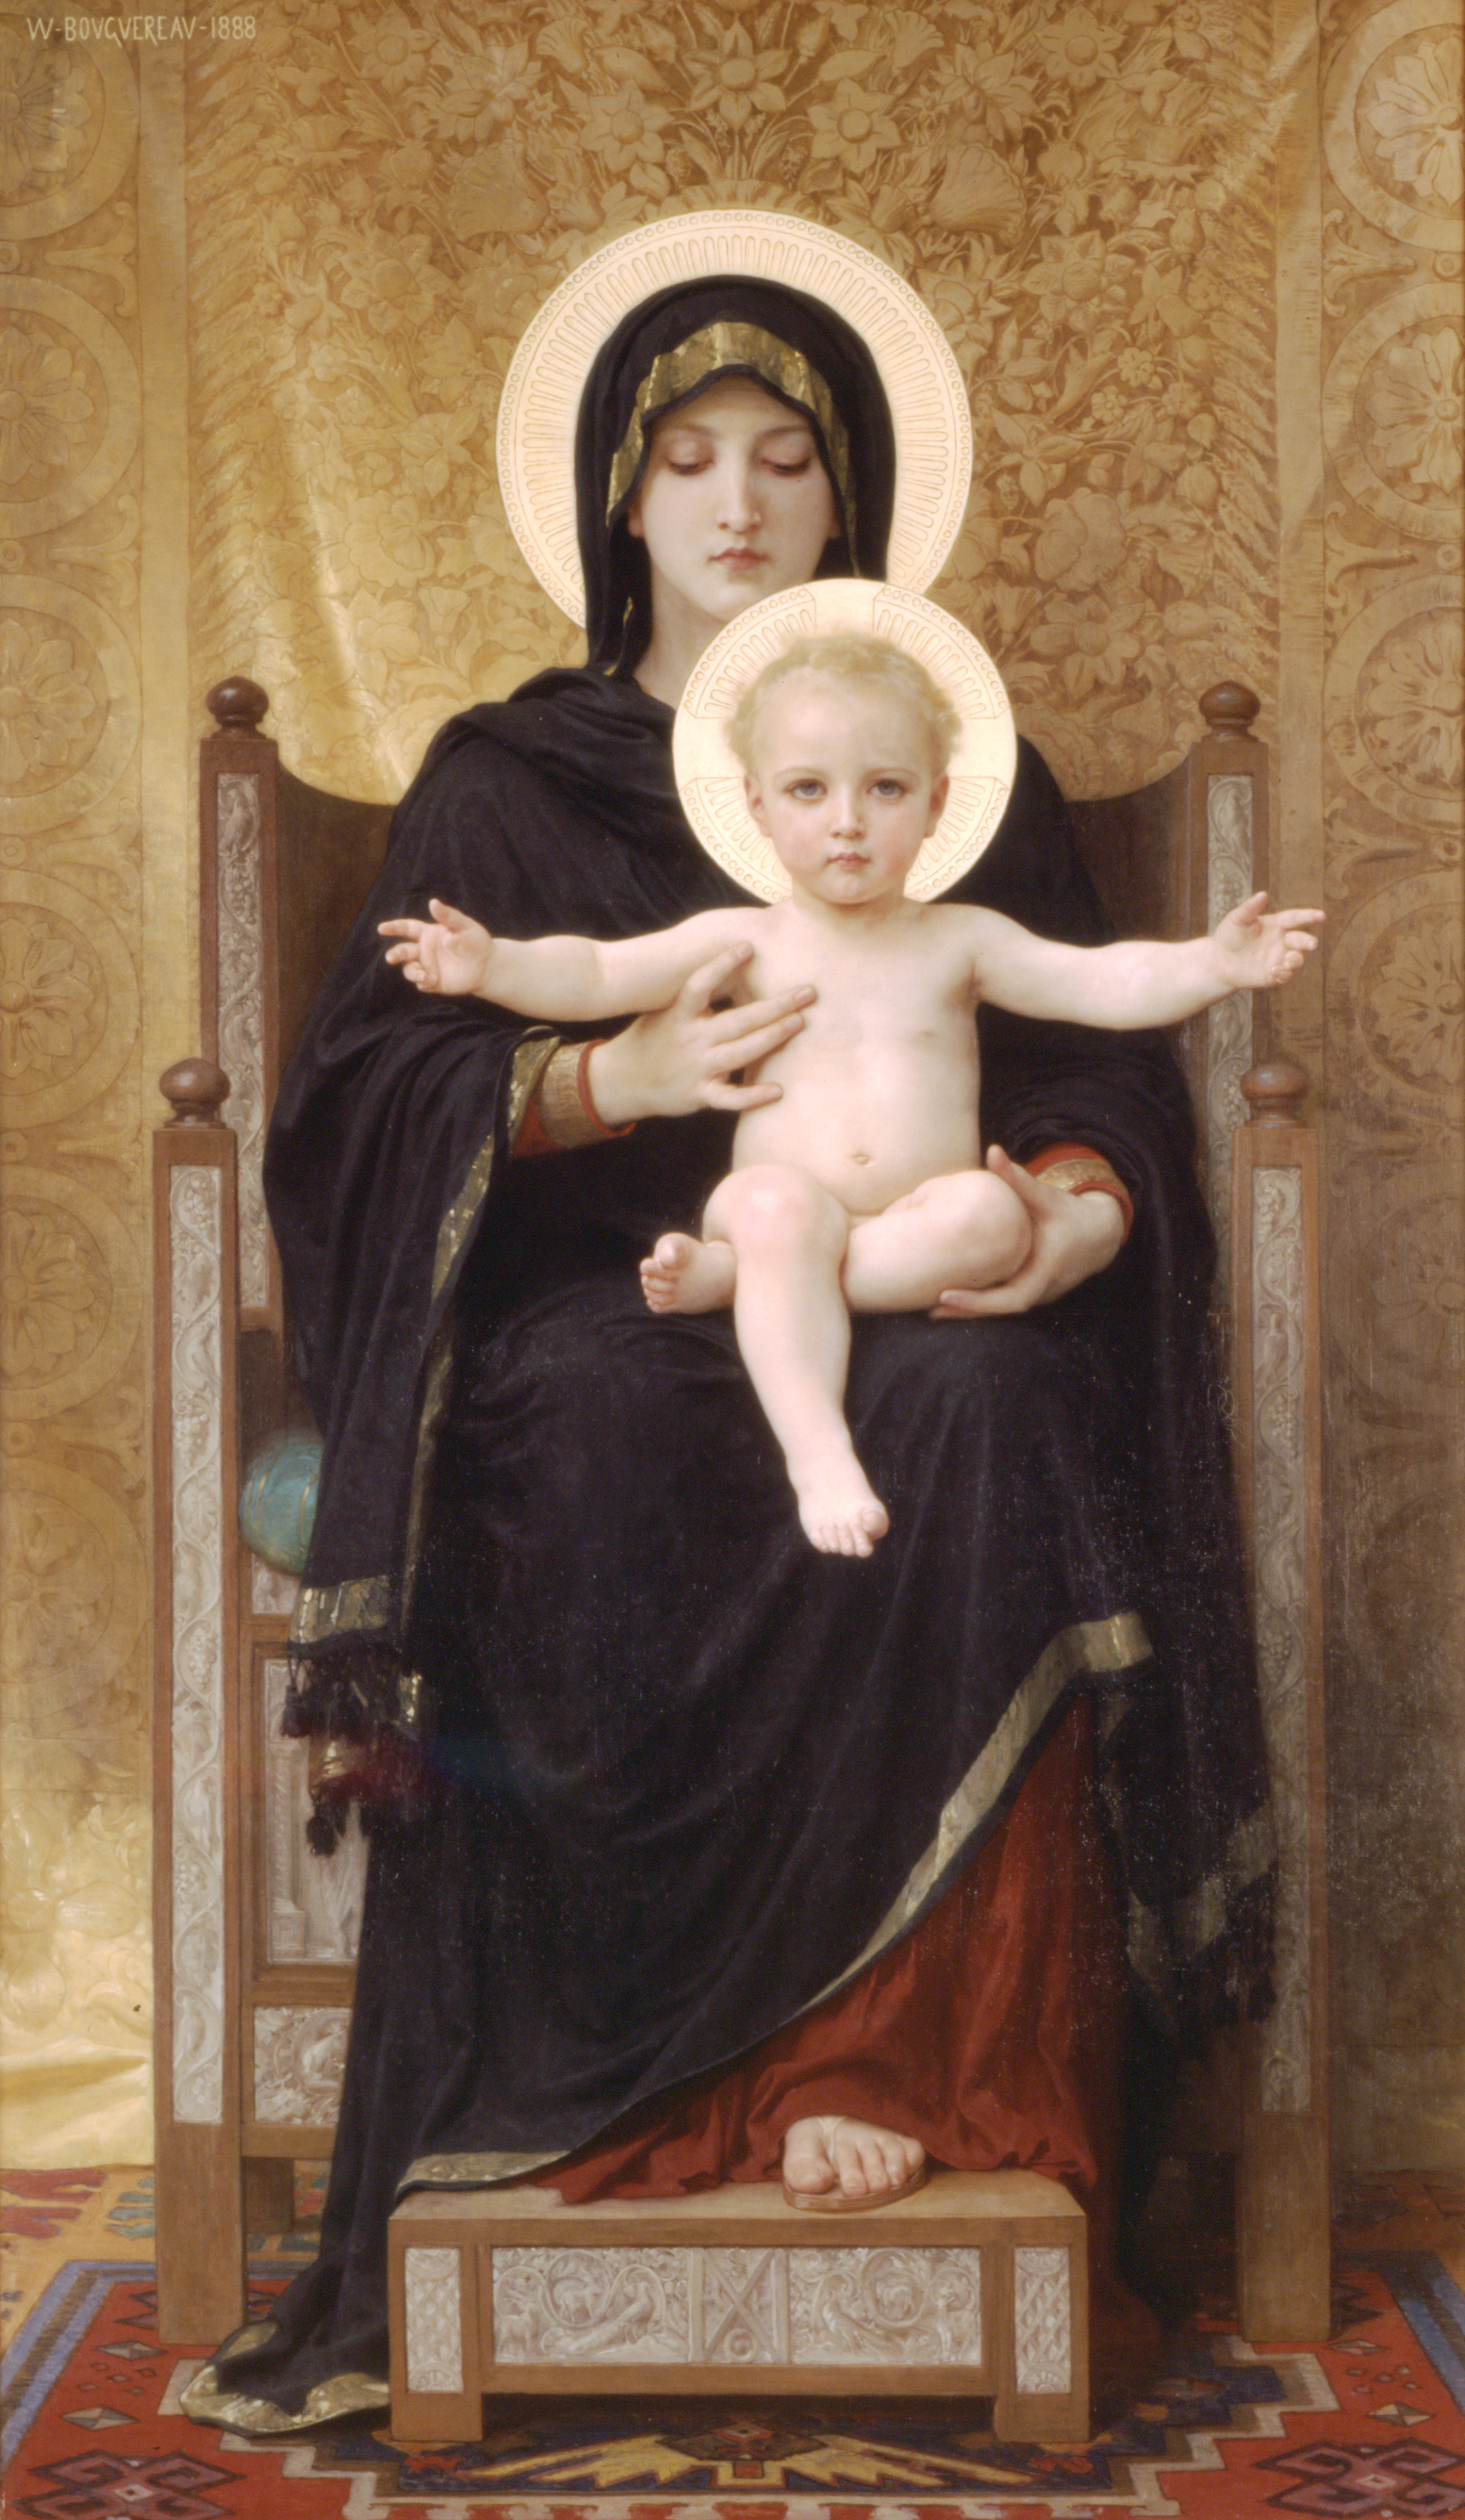 William Bouguereau - virgin and child 1888